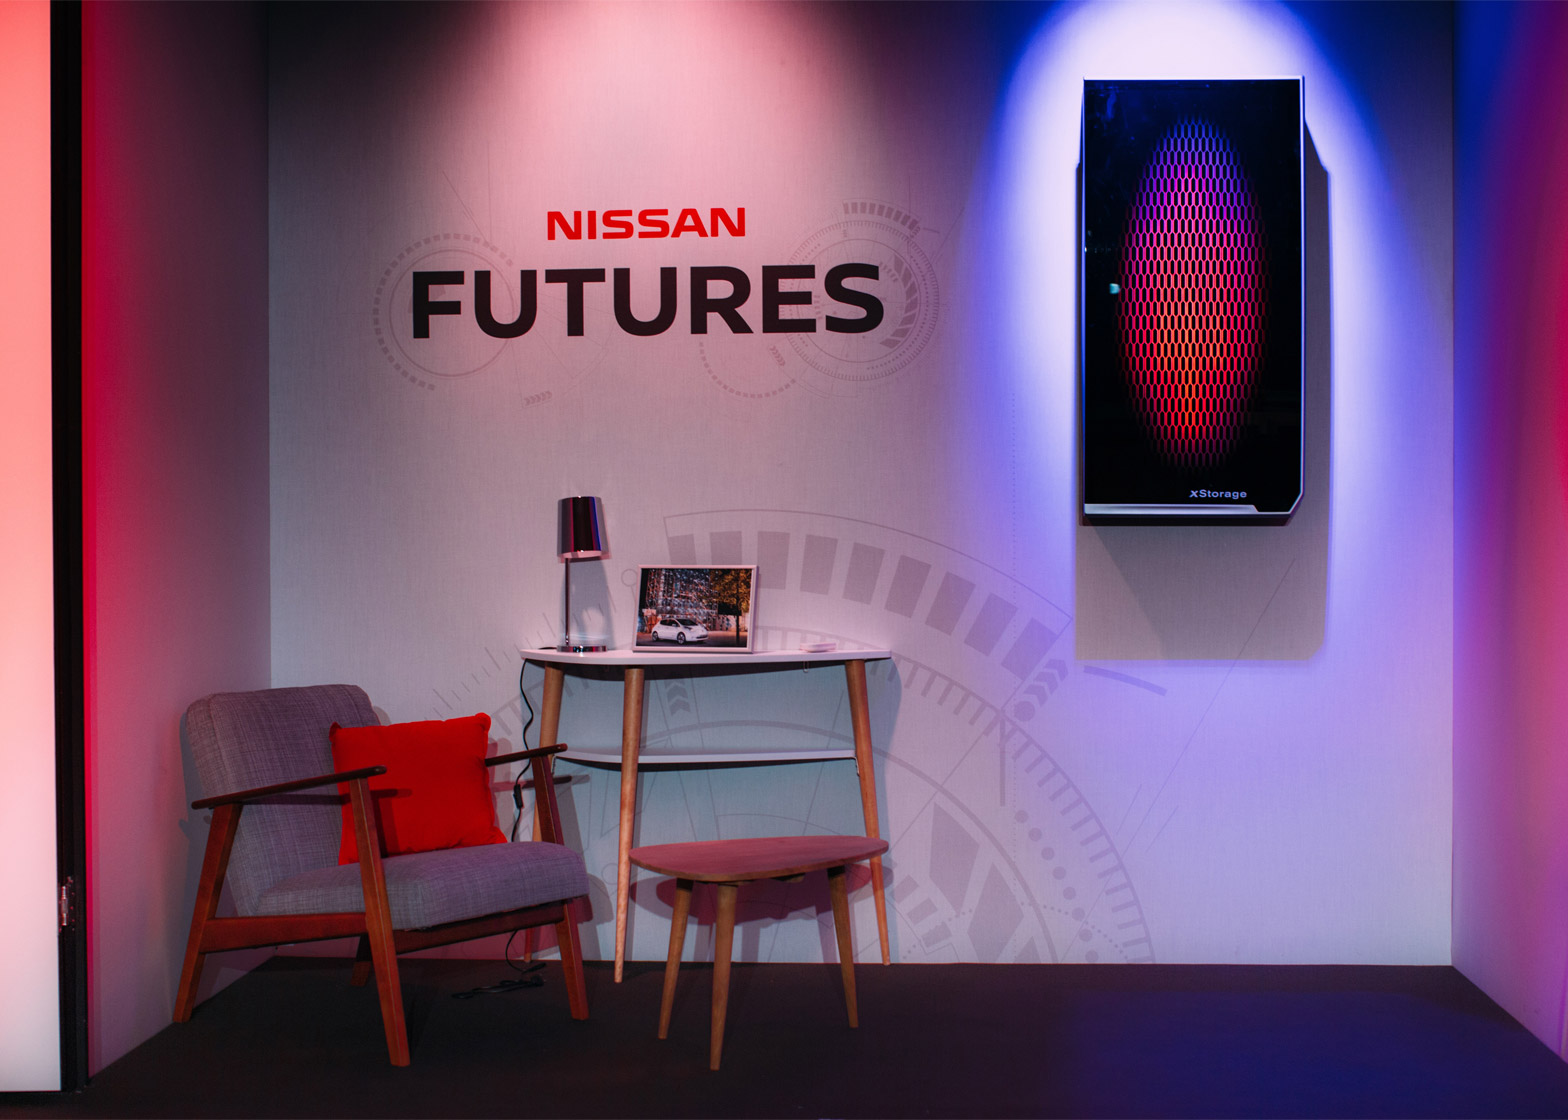 Nissan reveals its answer to Tesla's Powerwall battery system